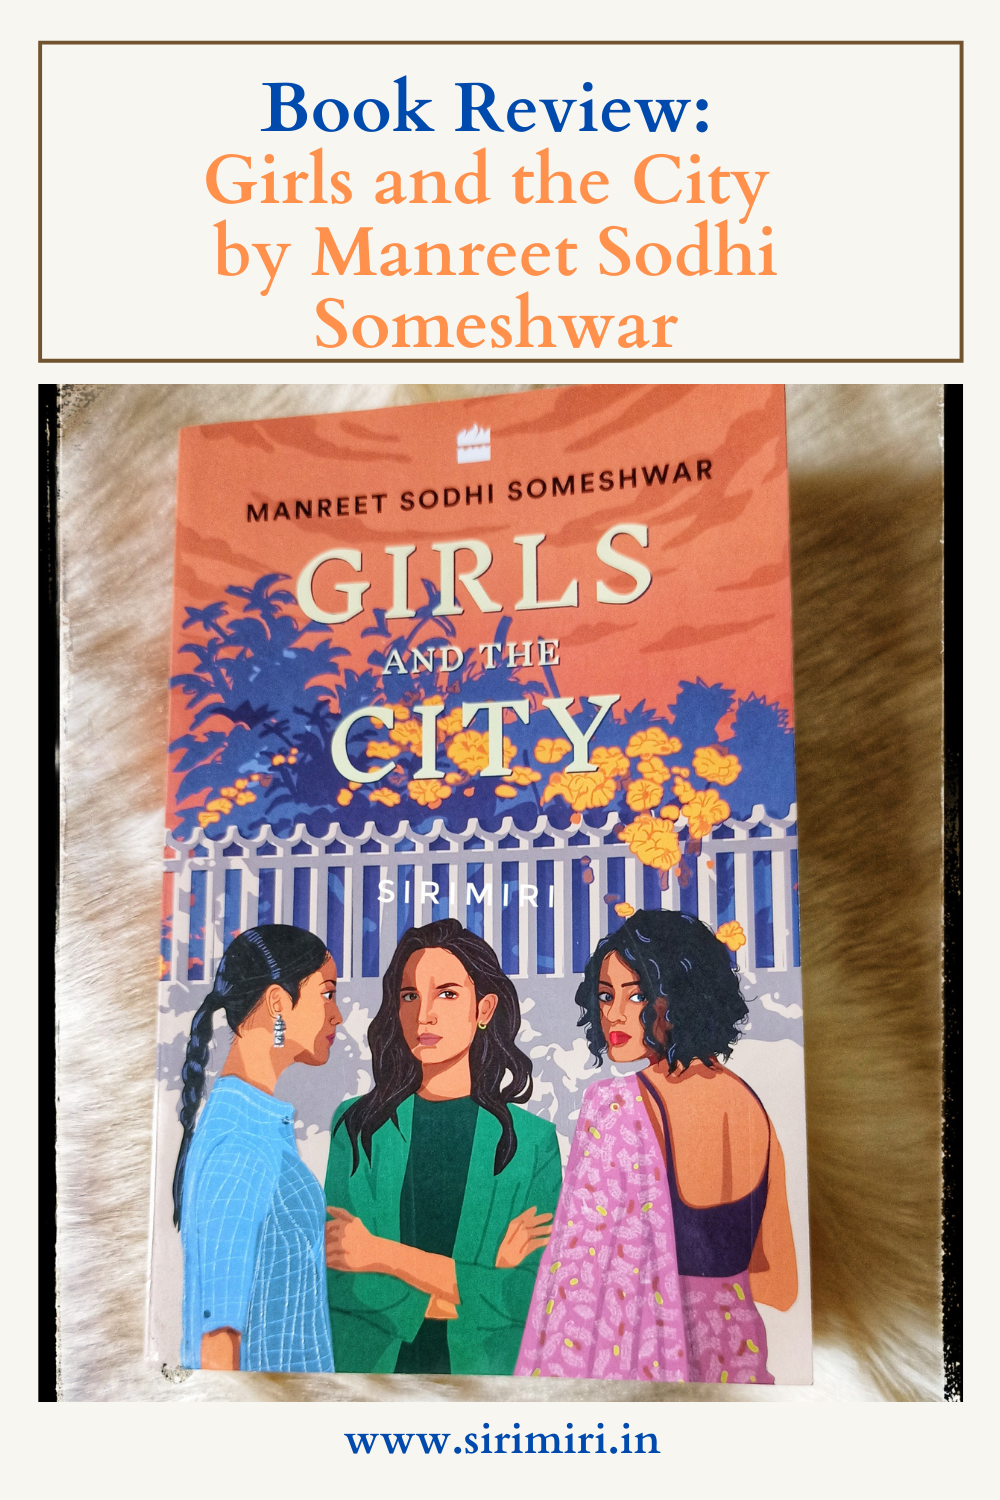 Book Review_ Girls _City_Manreet Sodhi Someshwar_Sirimiri